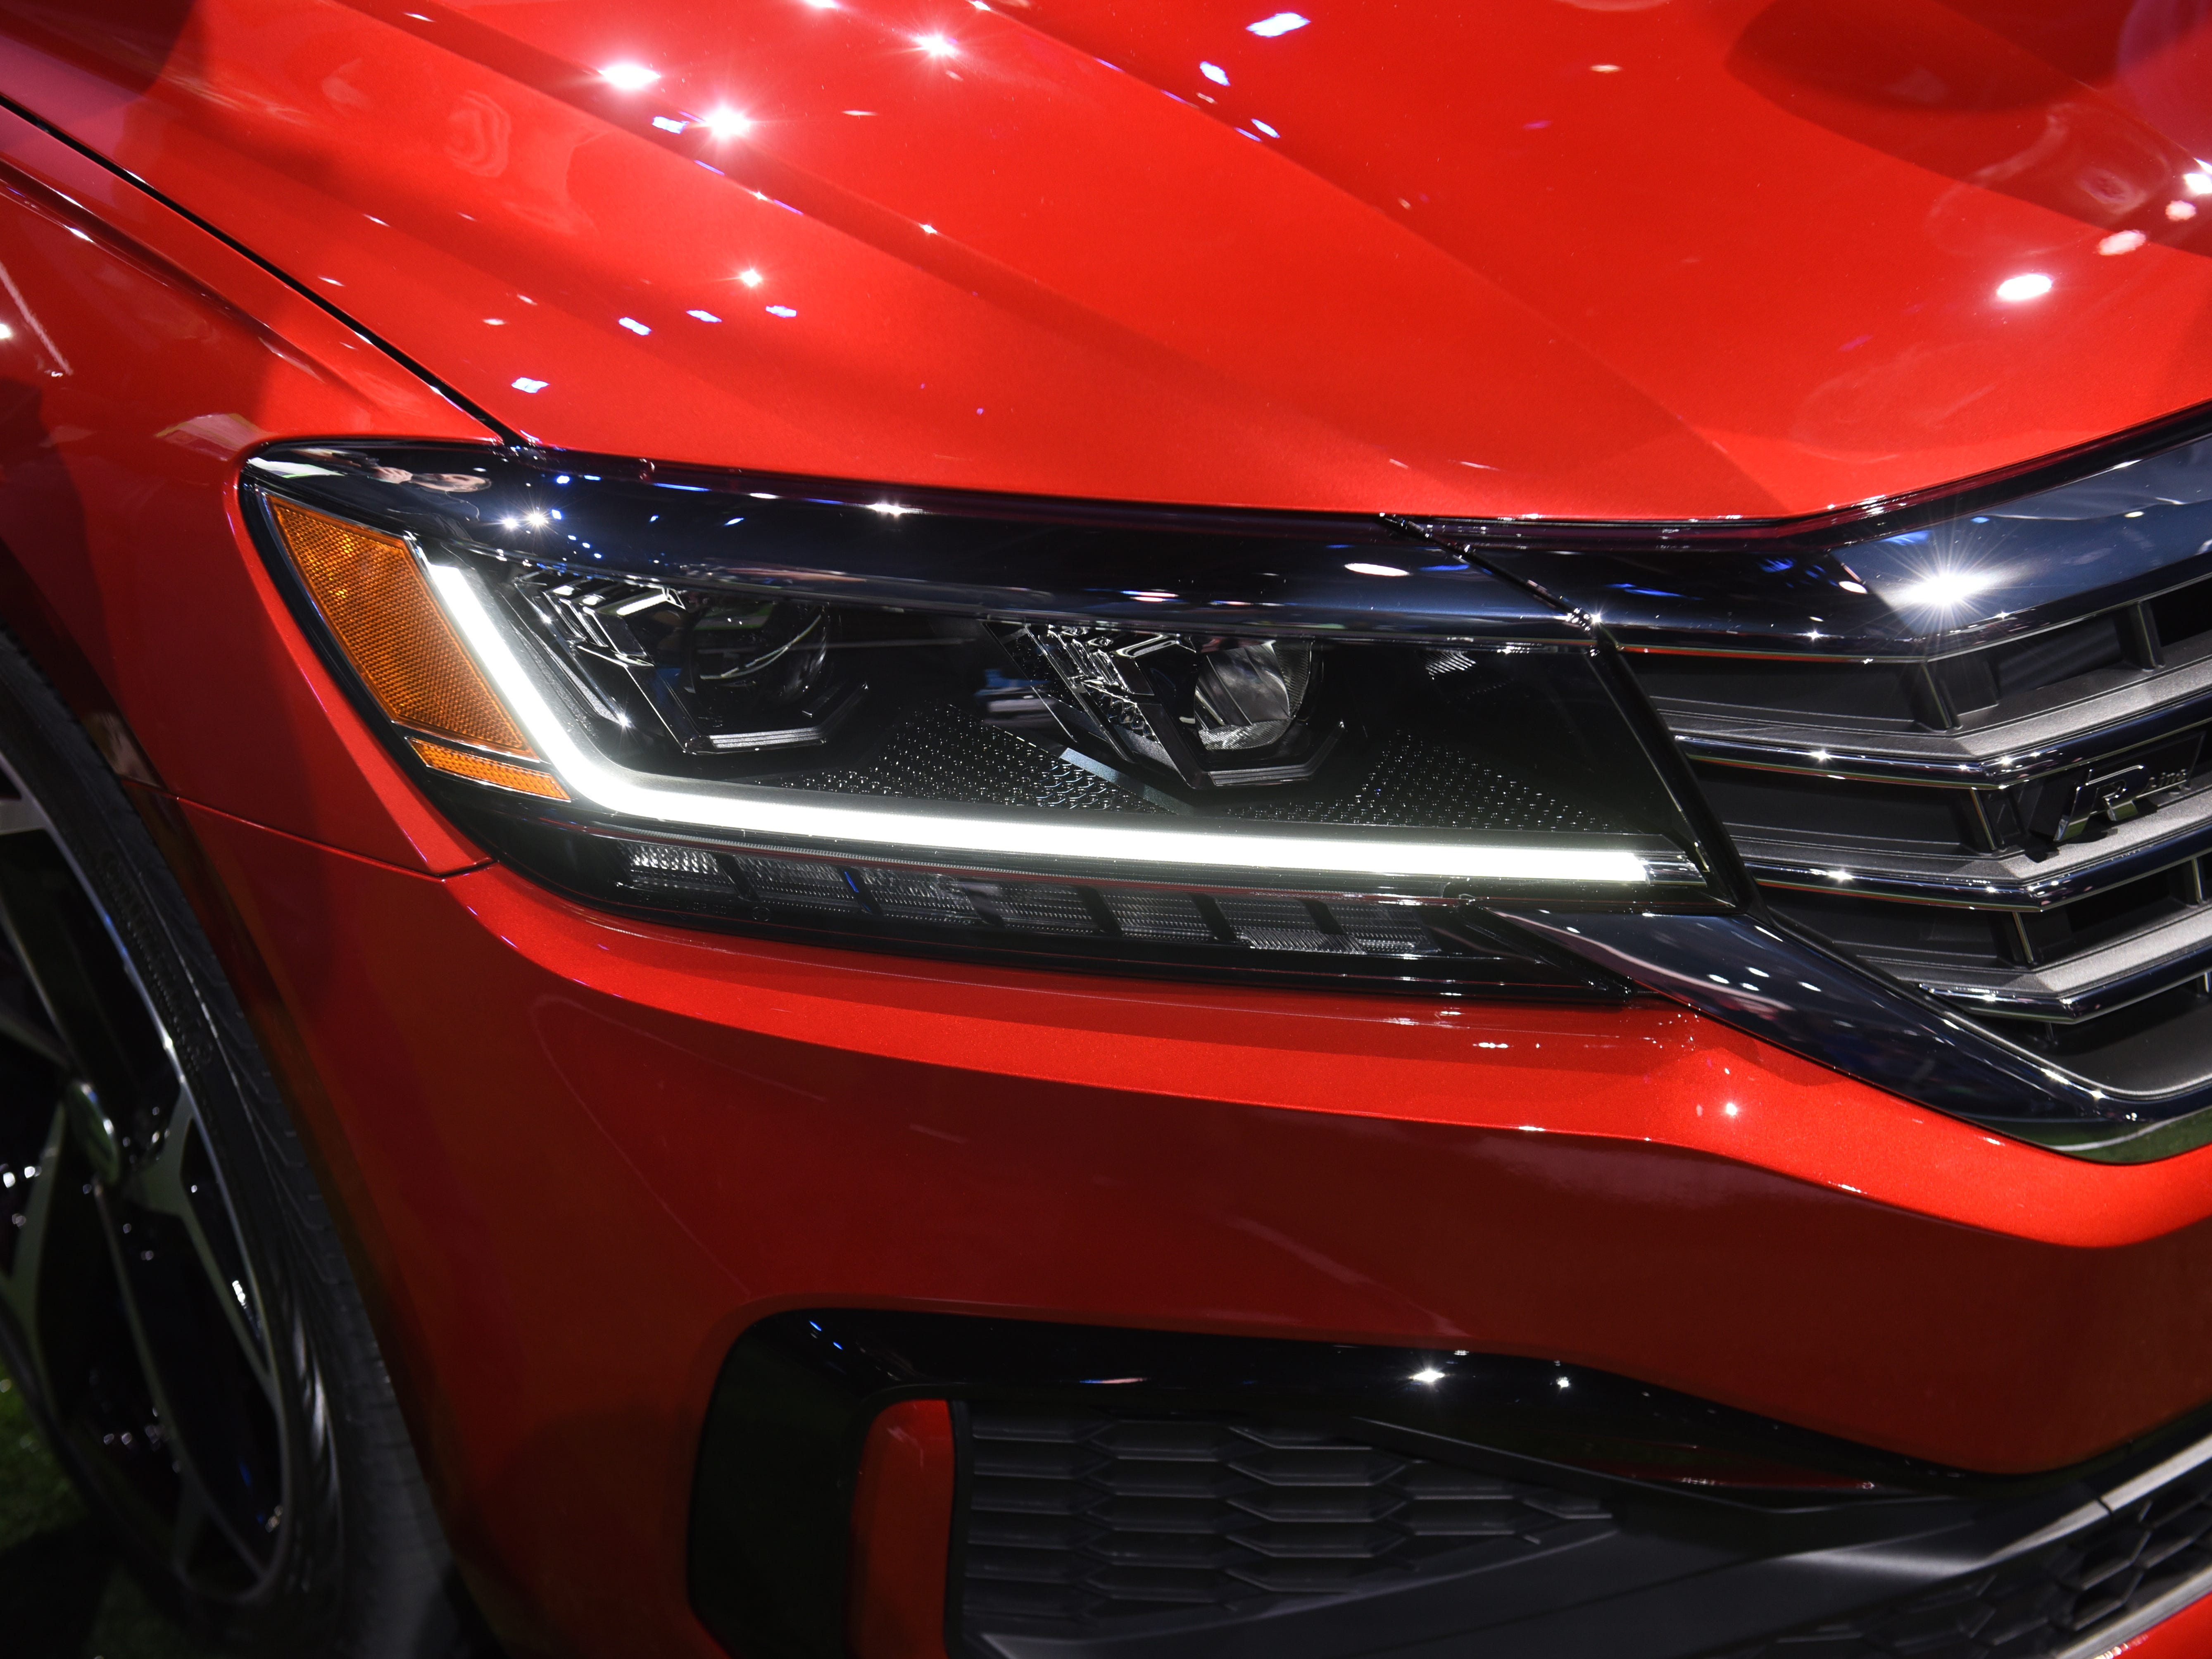 Slim LED headlight and taillights are standards.